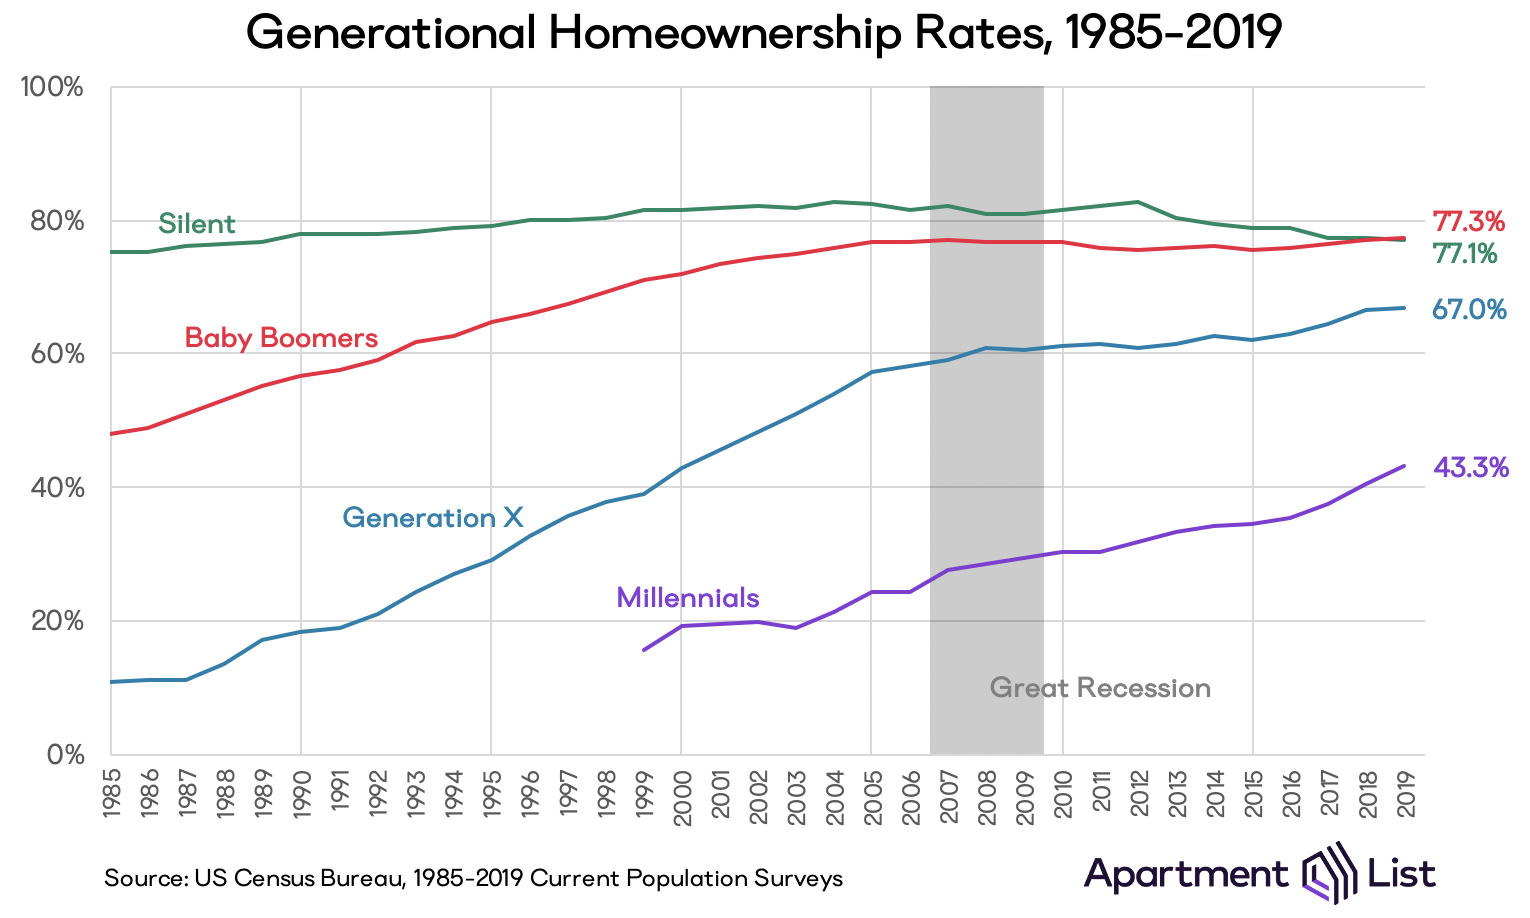 Chart showing homeownership rates over time for each generation. The millennial rate ranges from 18% in 1999 to 43% in 2019.